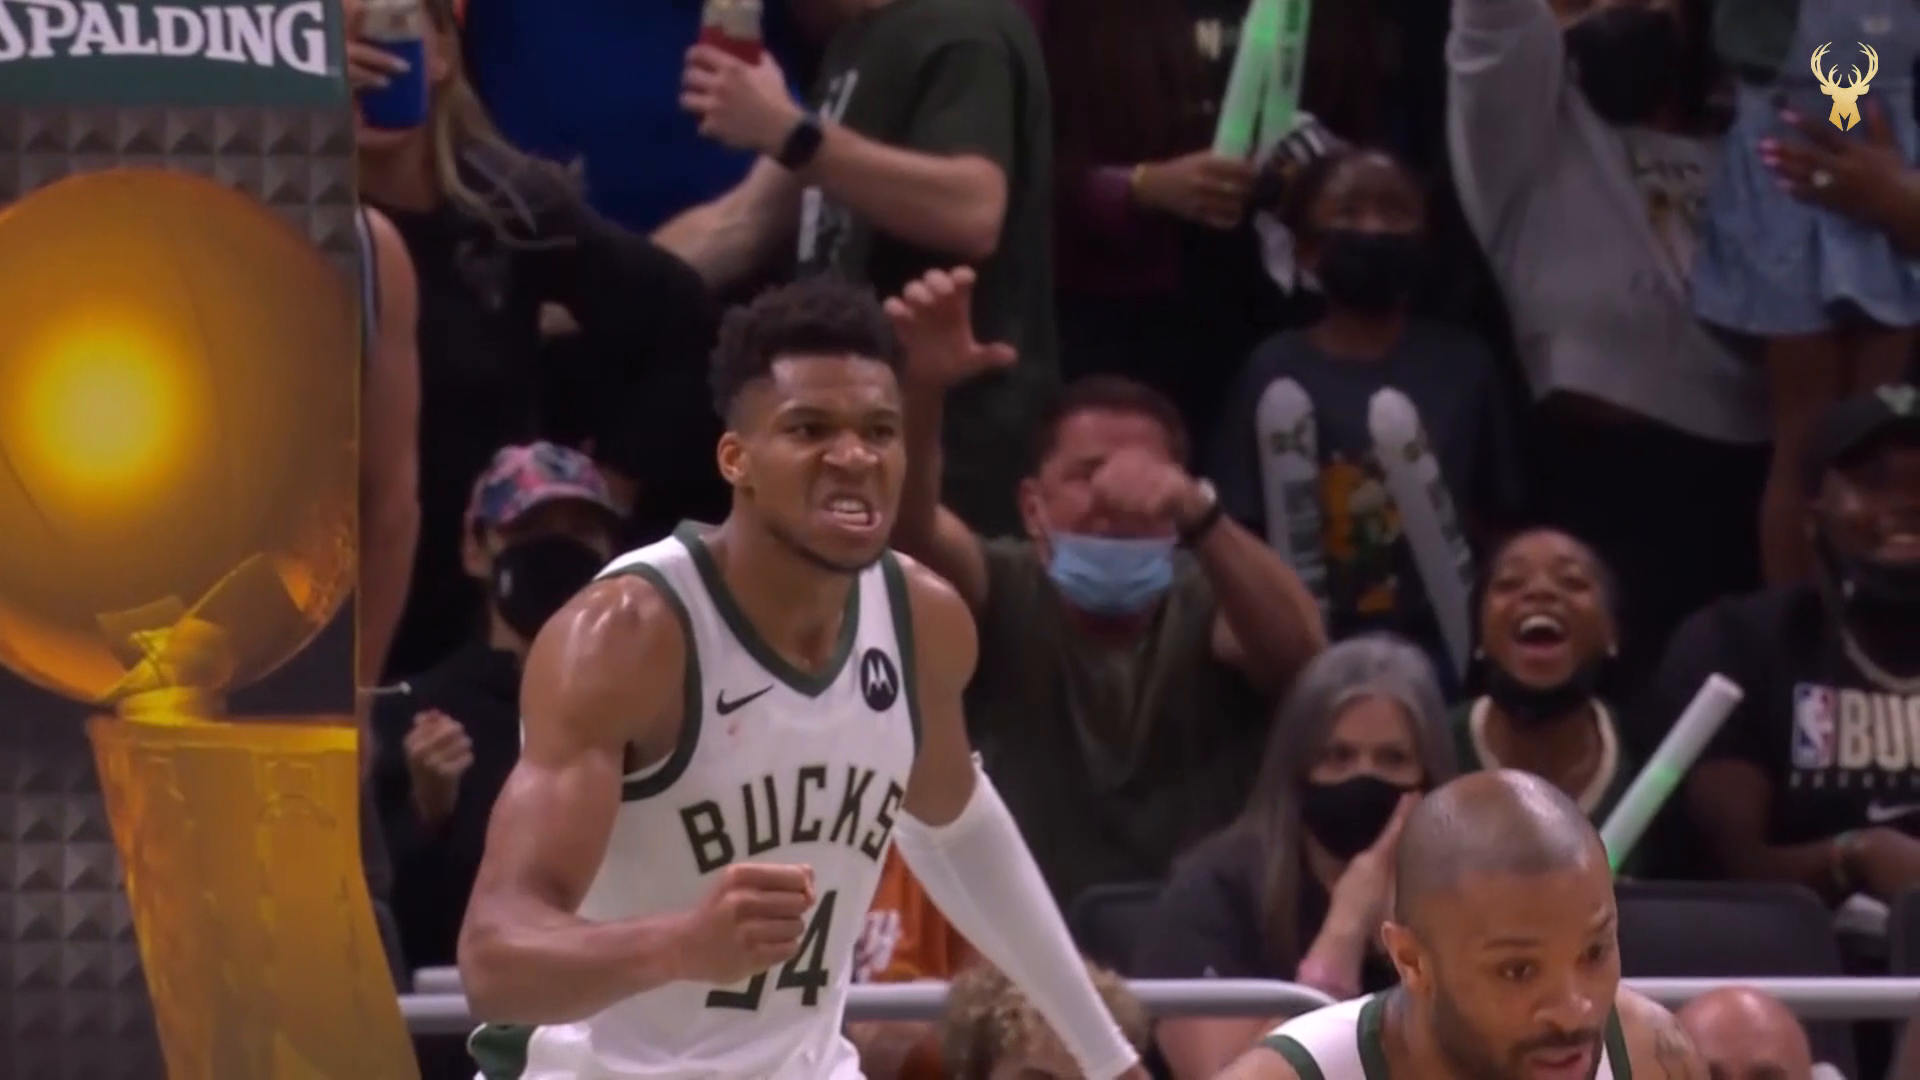 Giannis Antetokounmpo's Top 10 Plays Of The Finals